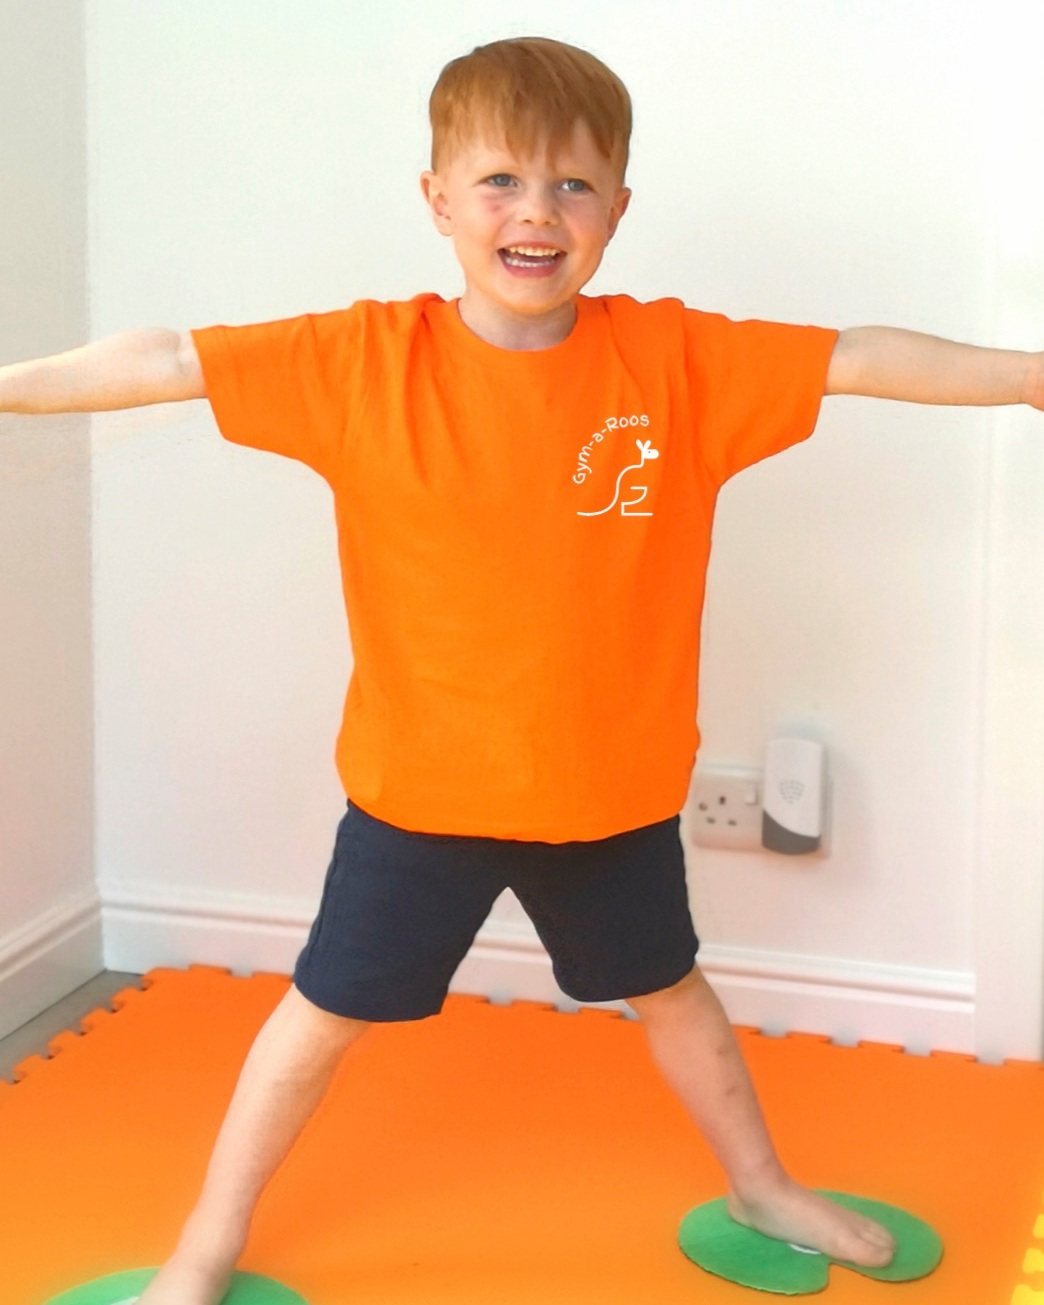 INDEPENDENT GYMNASTIC CLASSES    Develop confidence and gymnastic skills at these independent classes aimed at pre-schoolers aged 3 - 5 years.